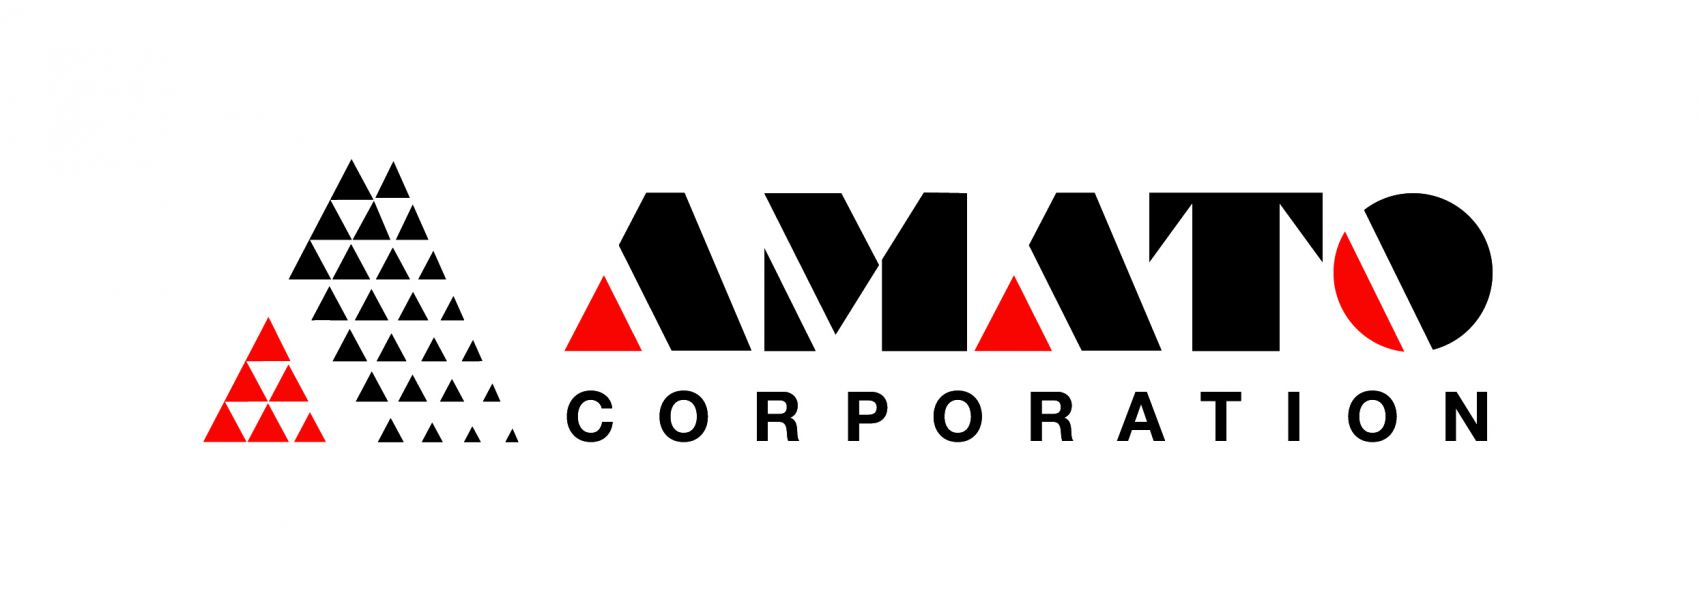 AMATO CORPORATION traslochi